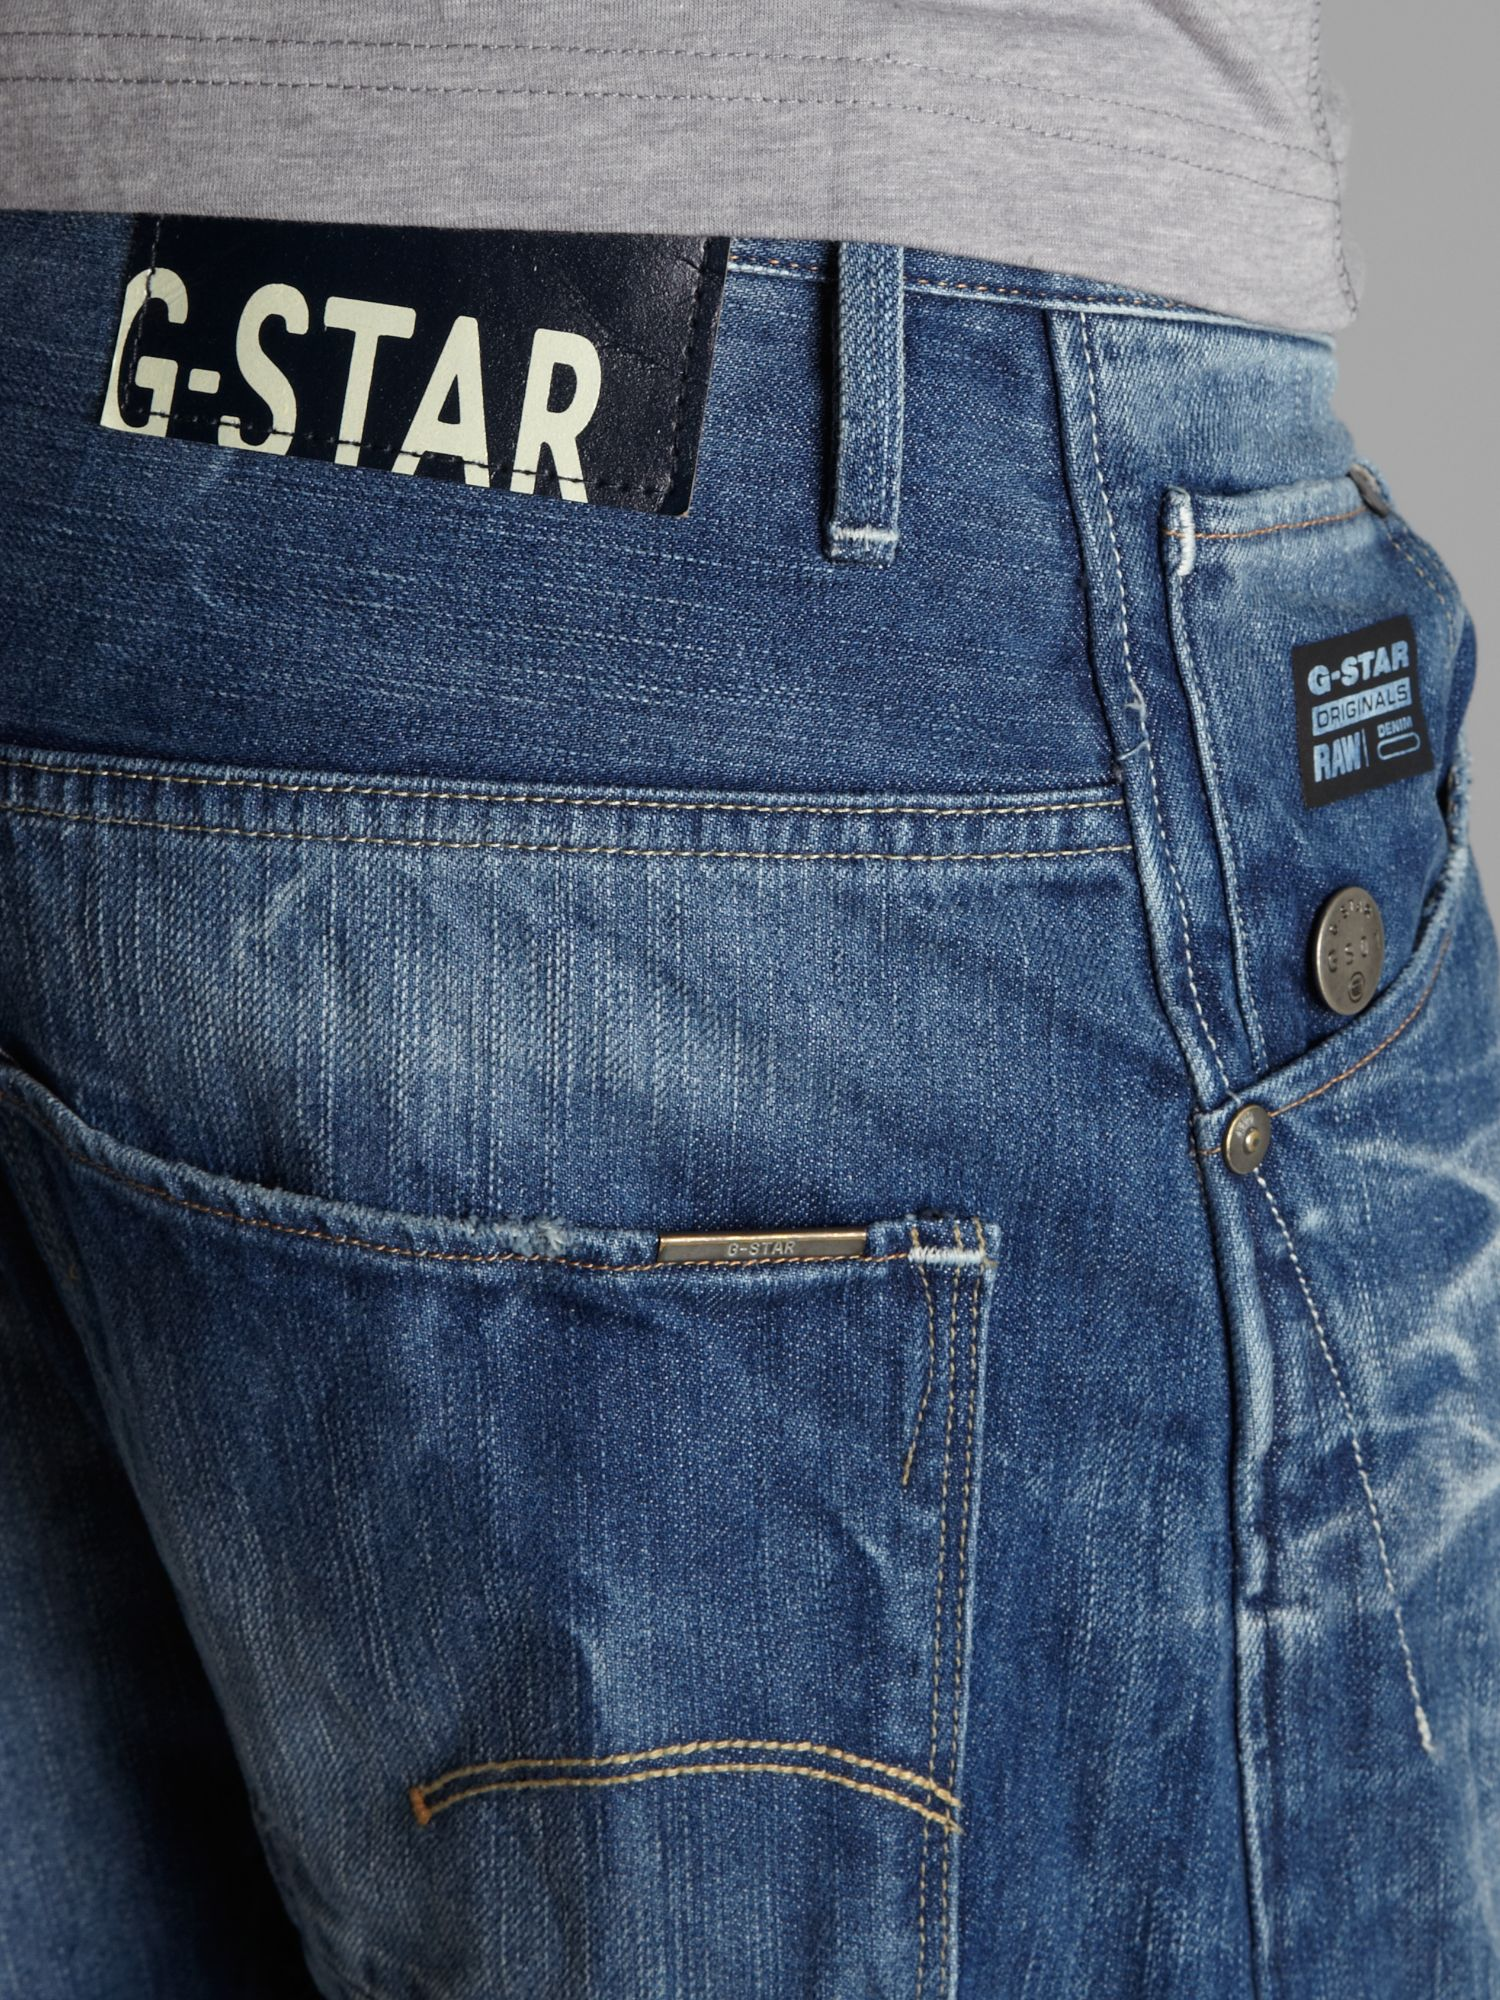 g star raw arc 3d loose tapered jeans in blue for men lyst. Black Bedroom Furniture Sets. Home Design Ideas